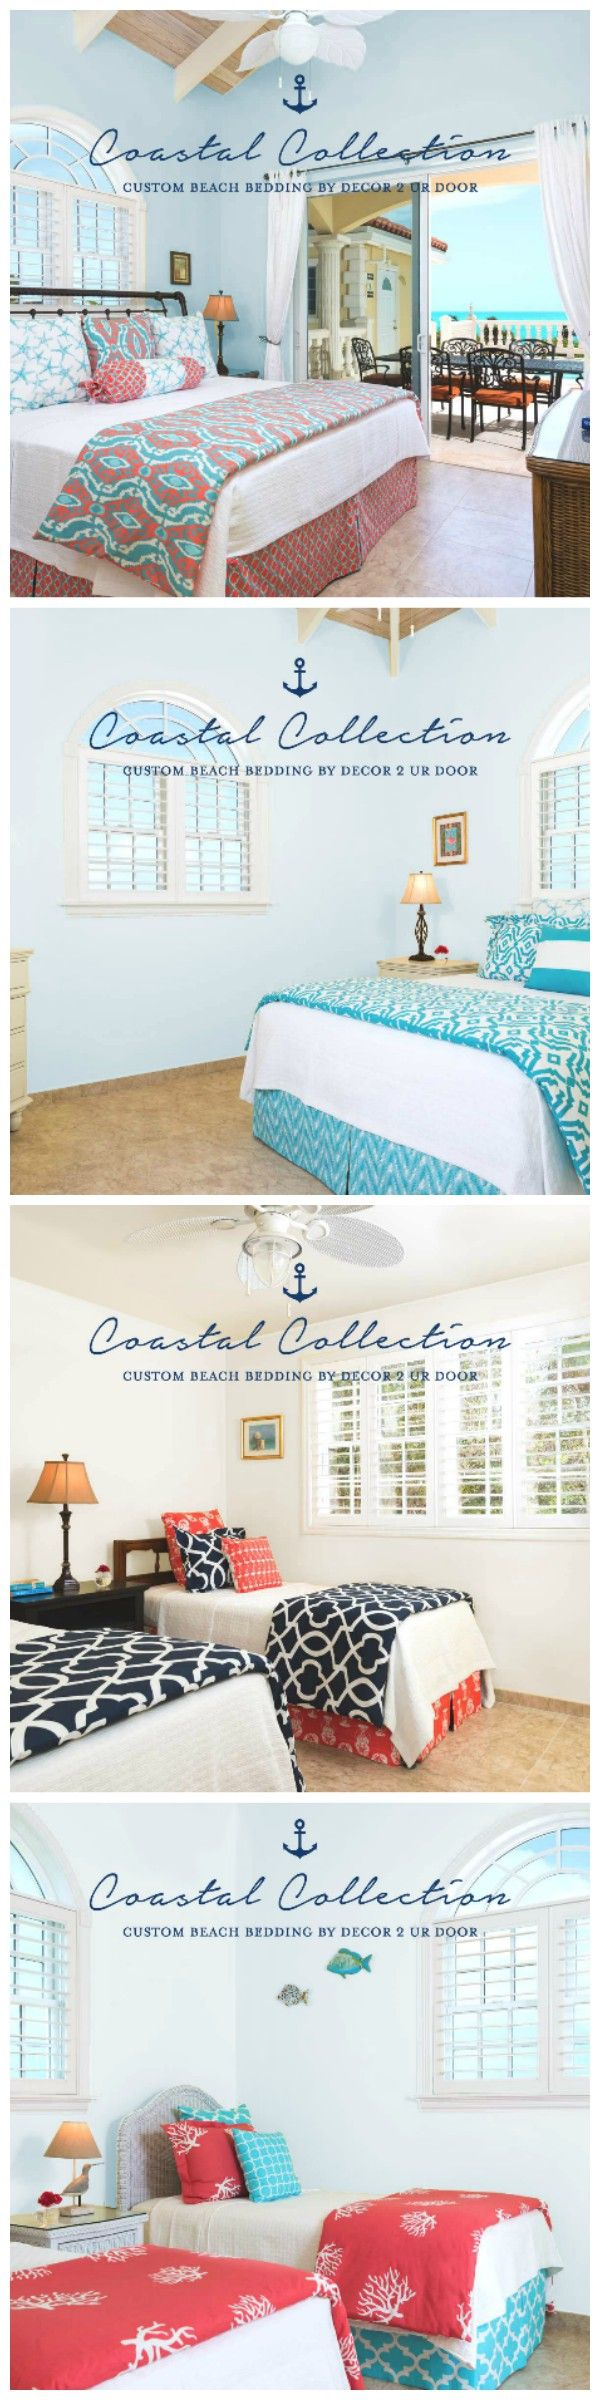 Introducing our new line of coastal beach and condo beach! Select from our designer pre-packaged sets or branch out and design your own beach bedding and our workroom will create to your specifications. Increase the beach vibe with several hundred nautical, seashell, and tropical fabrics. We offer indoor outdoor fabrics for added durability. Add monogramming, headboards, bed skirts, window treatments, pillows, sheets, coastal duvets and more for a true luxurious look.